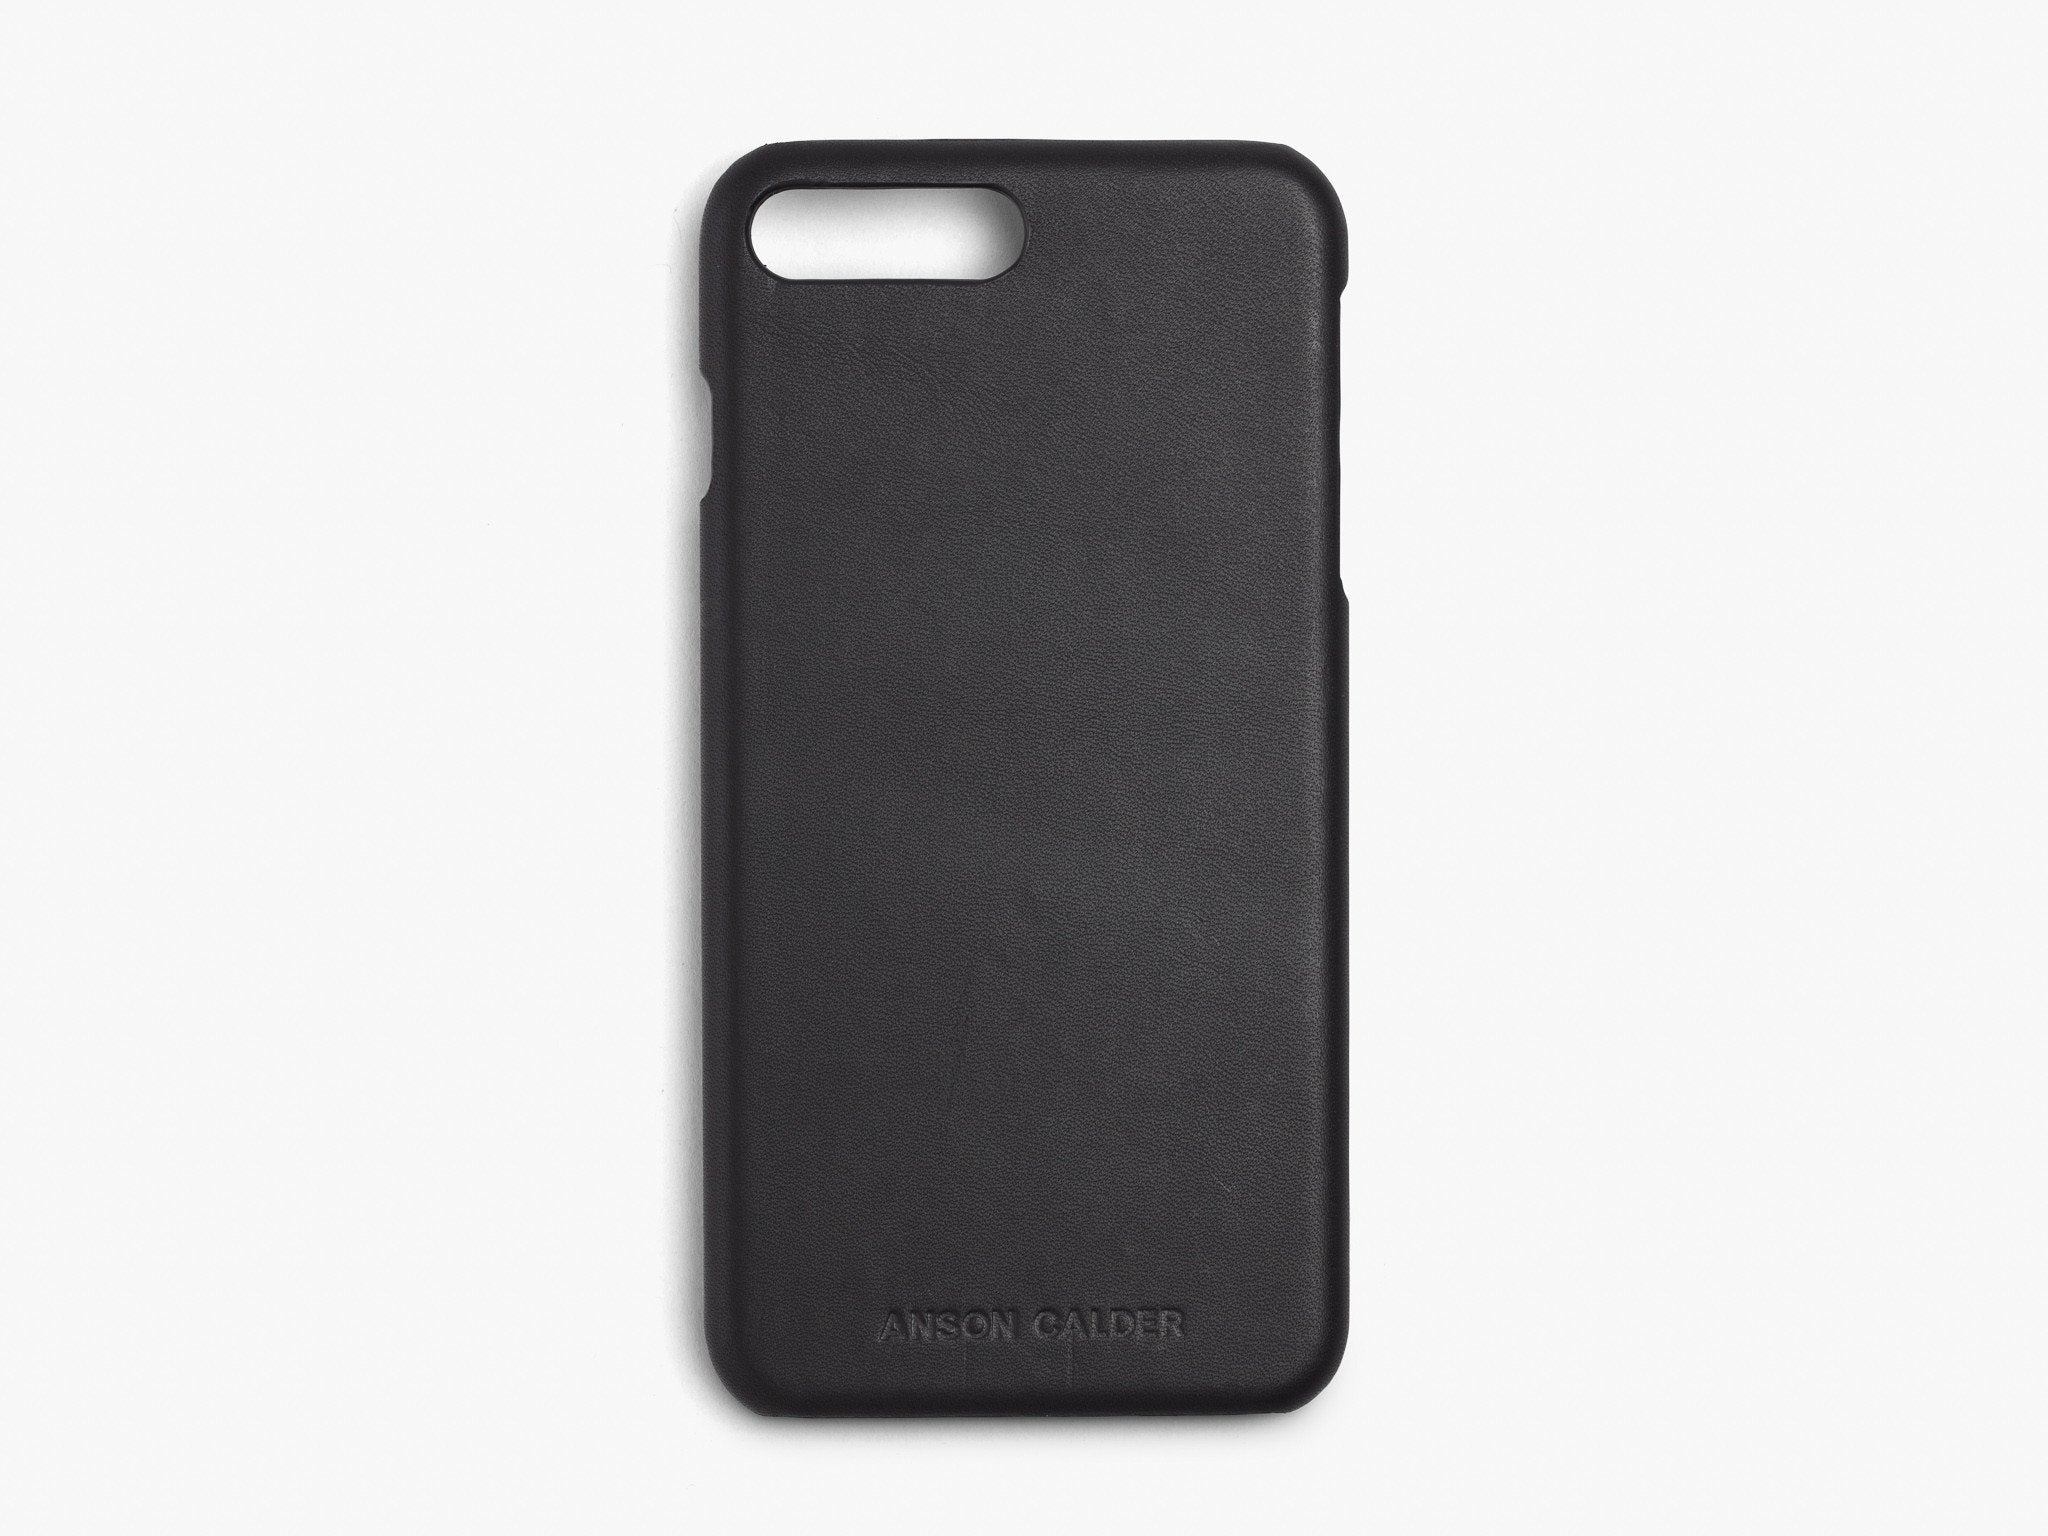 CALFSKIN iPHONE CASE CASES ANSON CALDER iPhone 8 Plus !iphone7plus _black